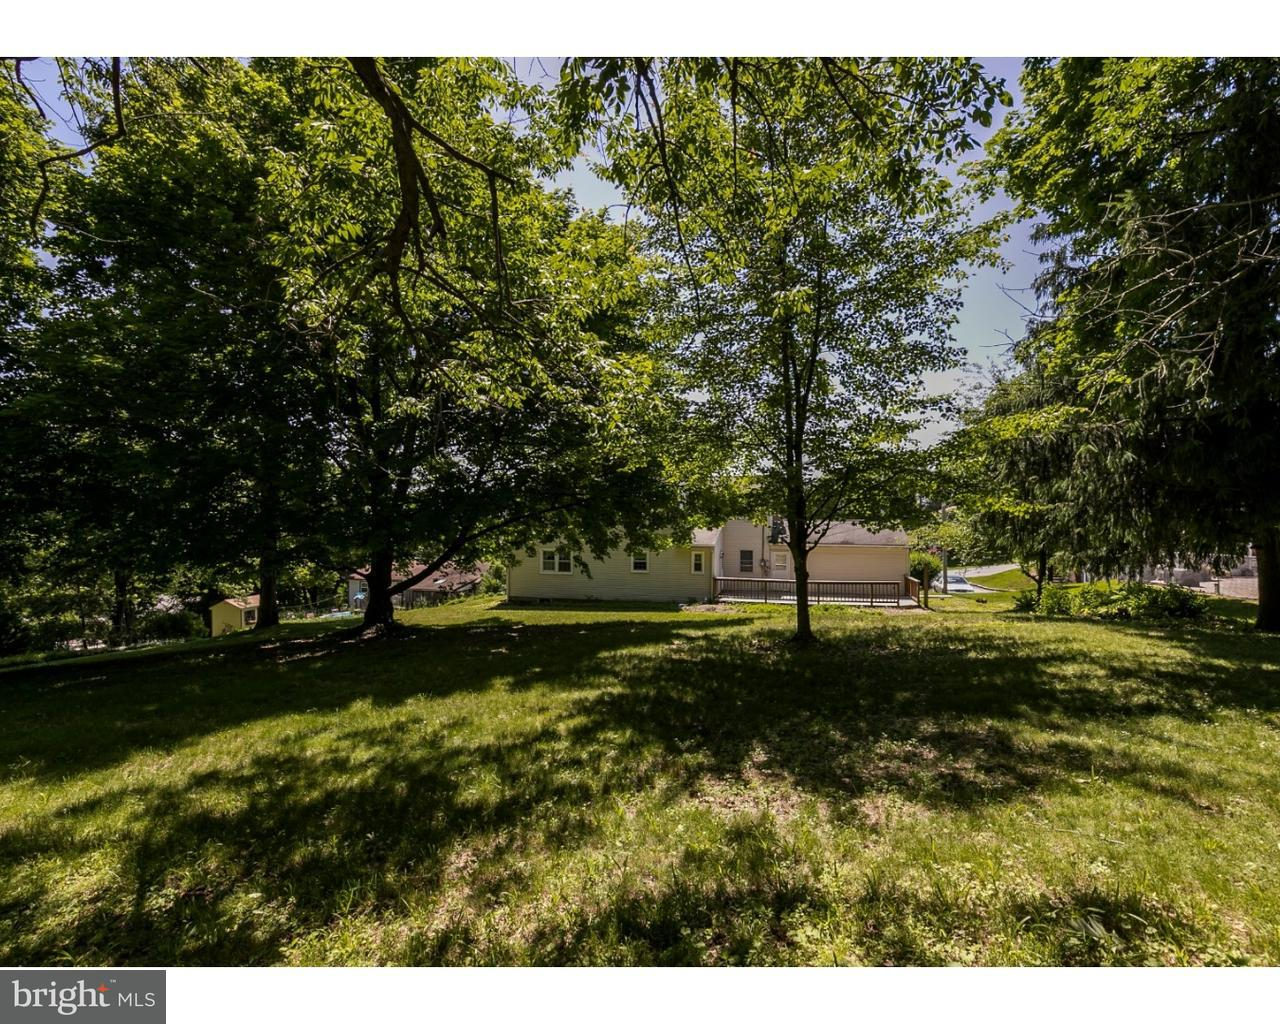 40 CLAY SLATE RD, OLEY - Listed at $239,950, OLEY